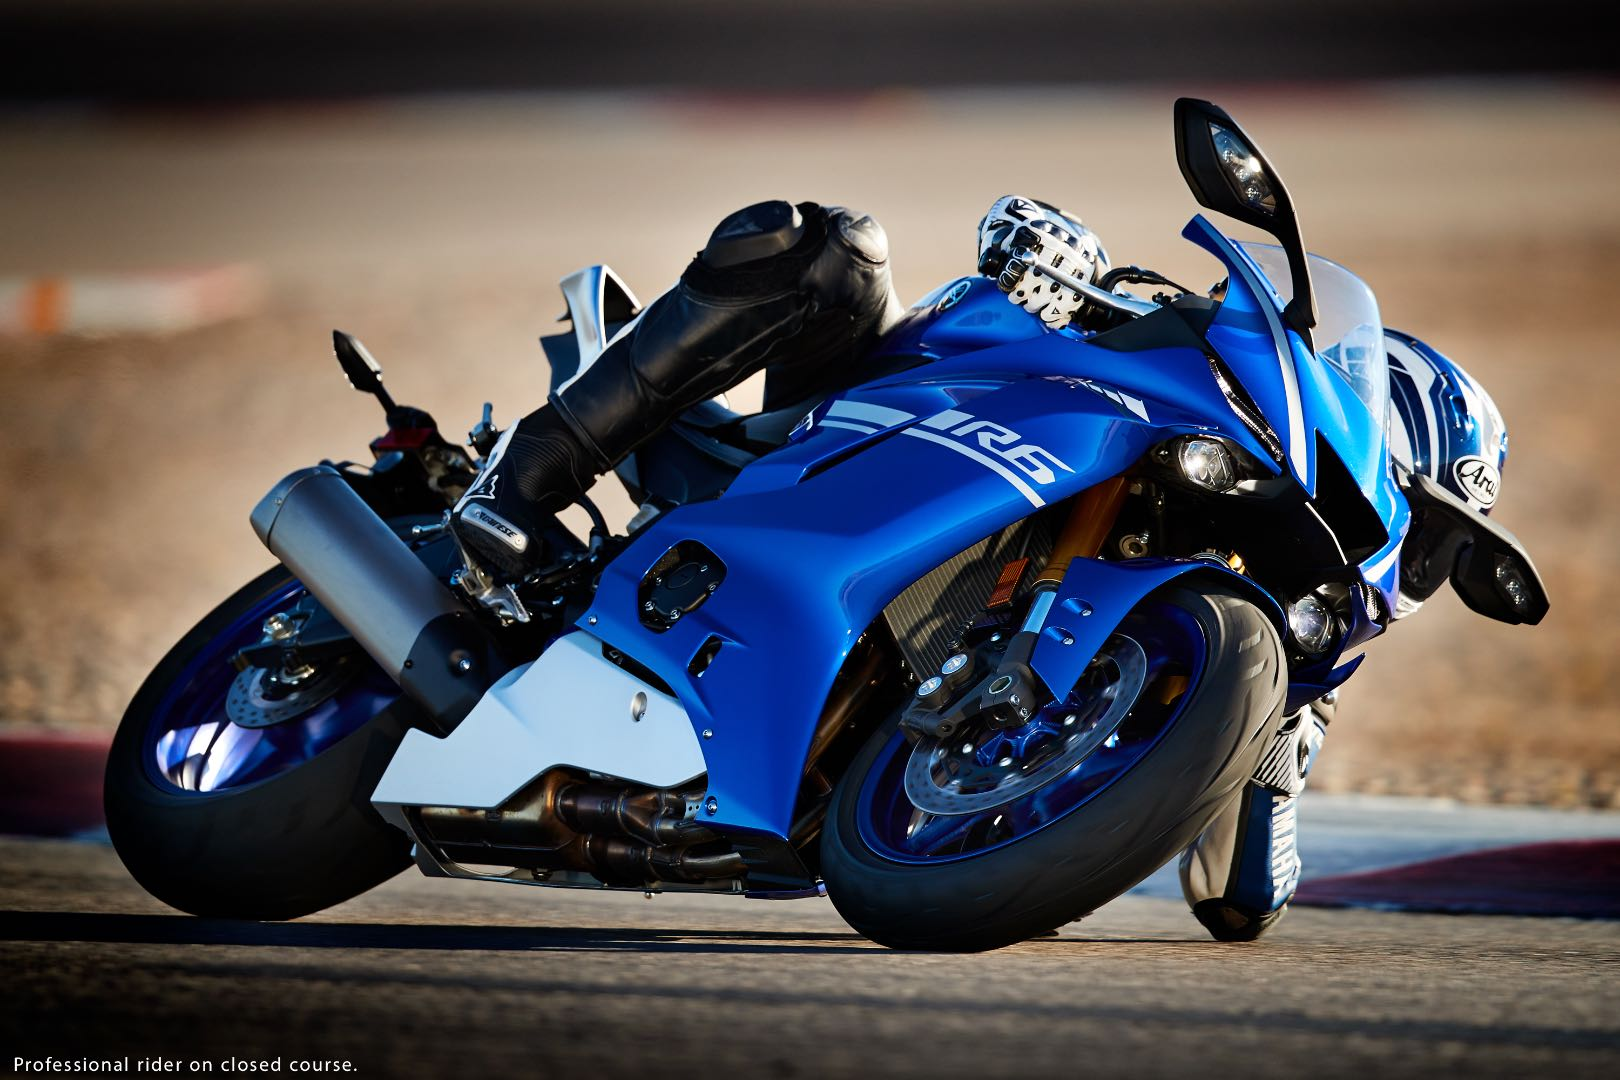 Supercross Girl Wallpaper Hd 2017 Yamaha Yzf R6 First Look 10 Fast Facts With Video